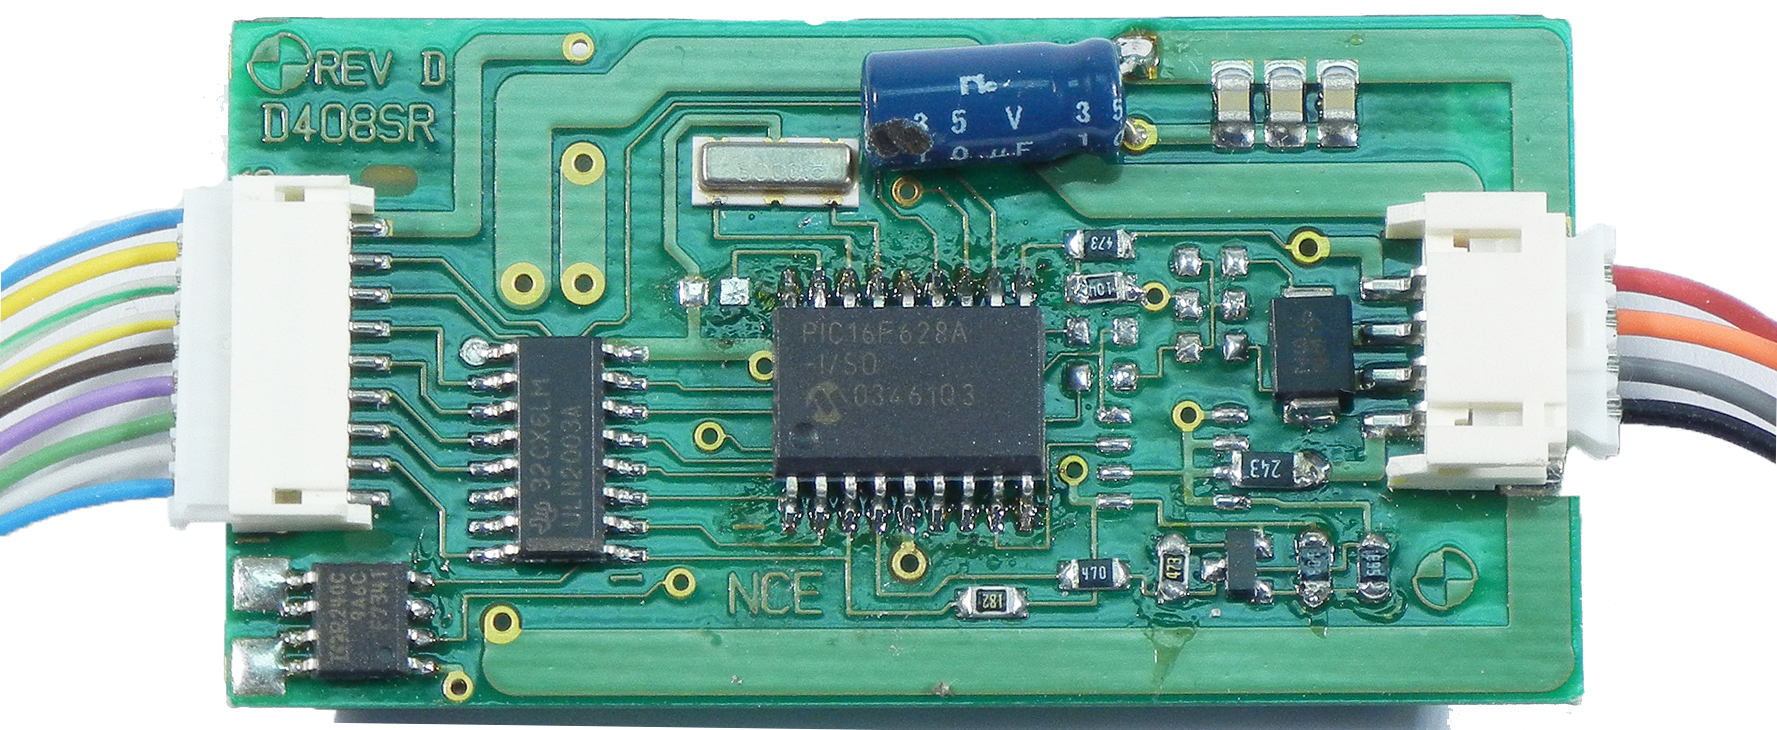 D408 – Welcome to the NCE Information Station Nce D Sr Decoder Wiring Diagrams on